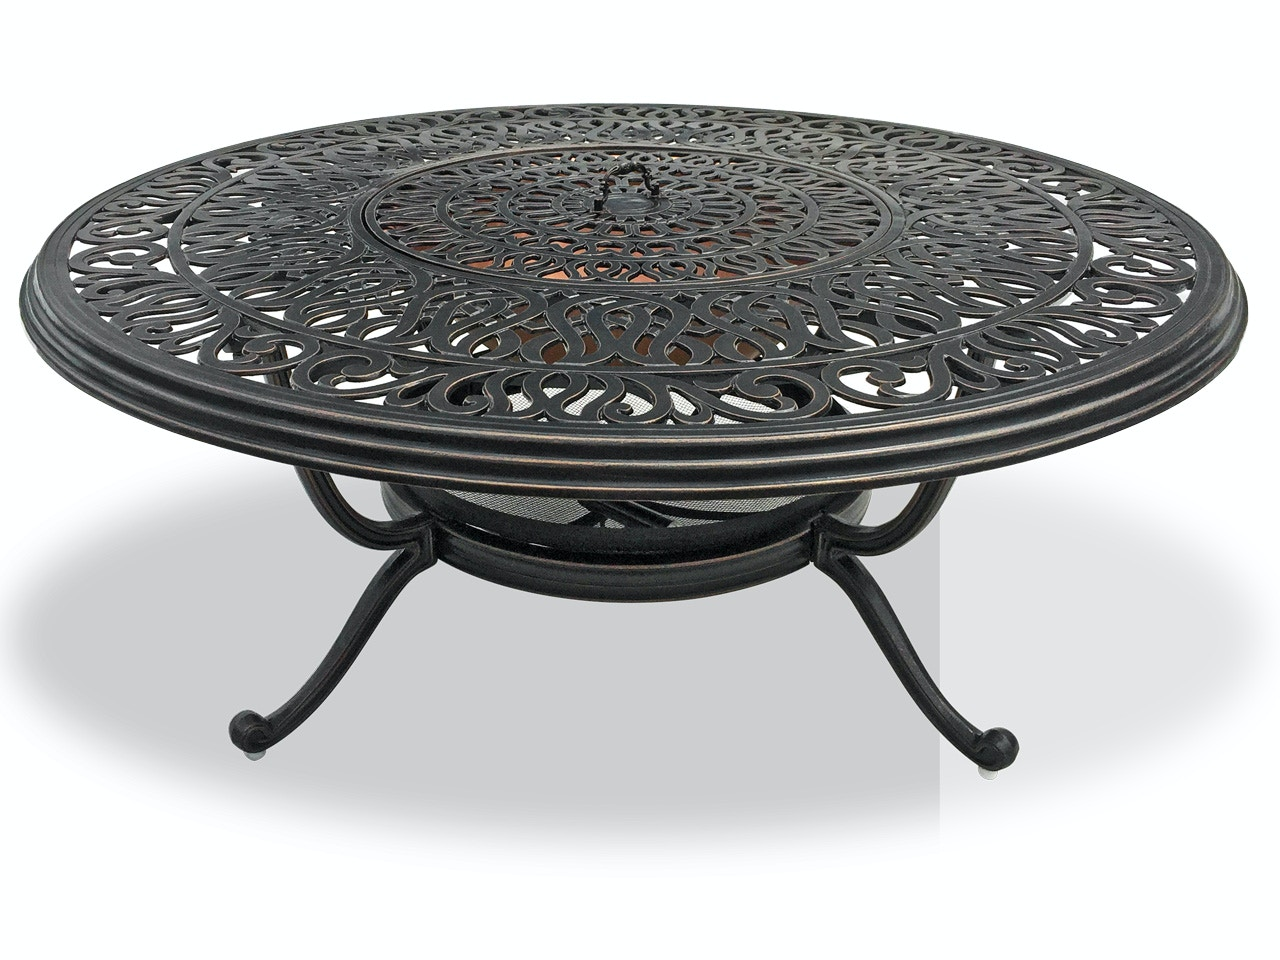 Outdoor Patio Cadiz Aged Bronze Cast Aluminum 48 In Fire Pit Coffee Table 3522400 Chair King